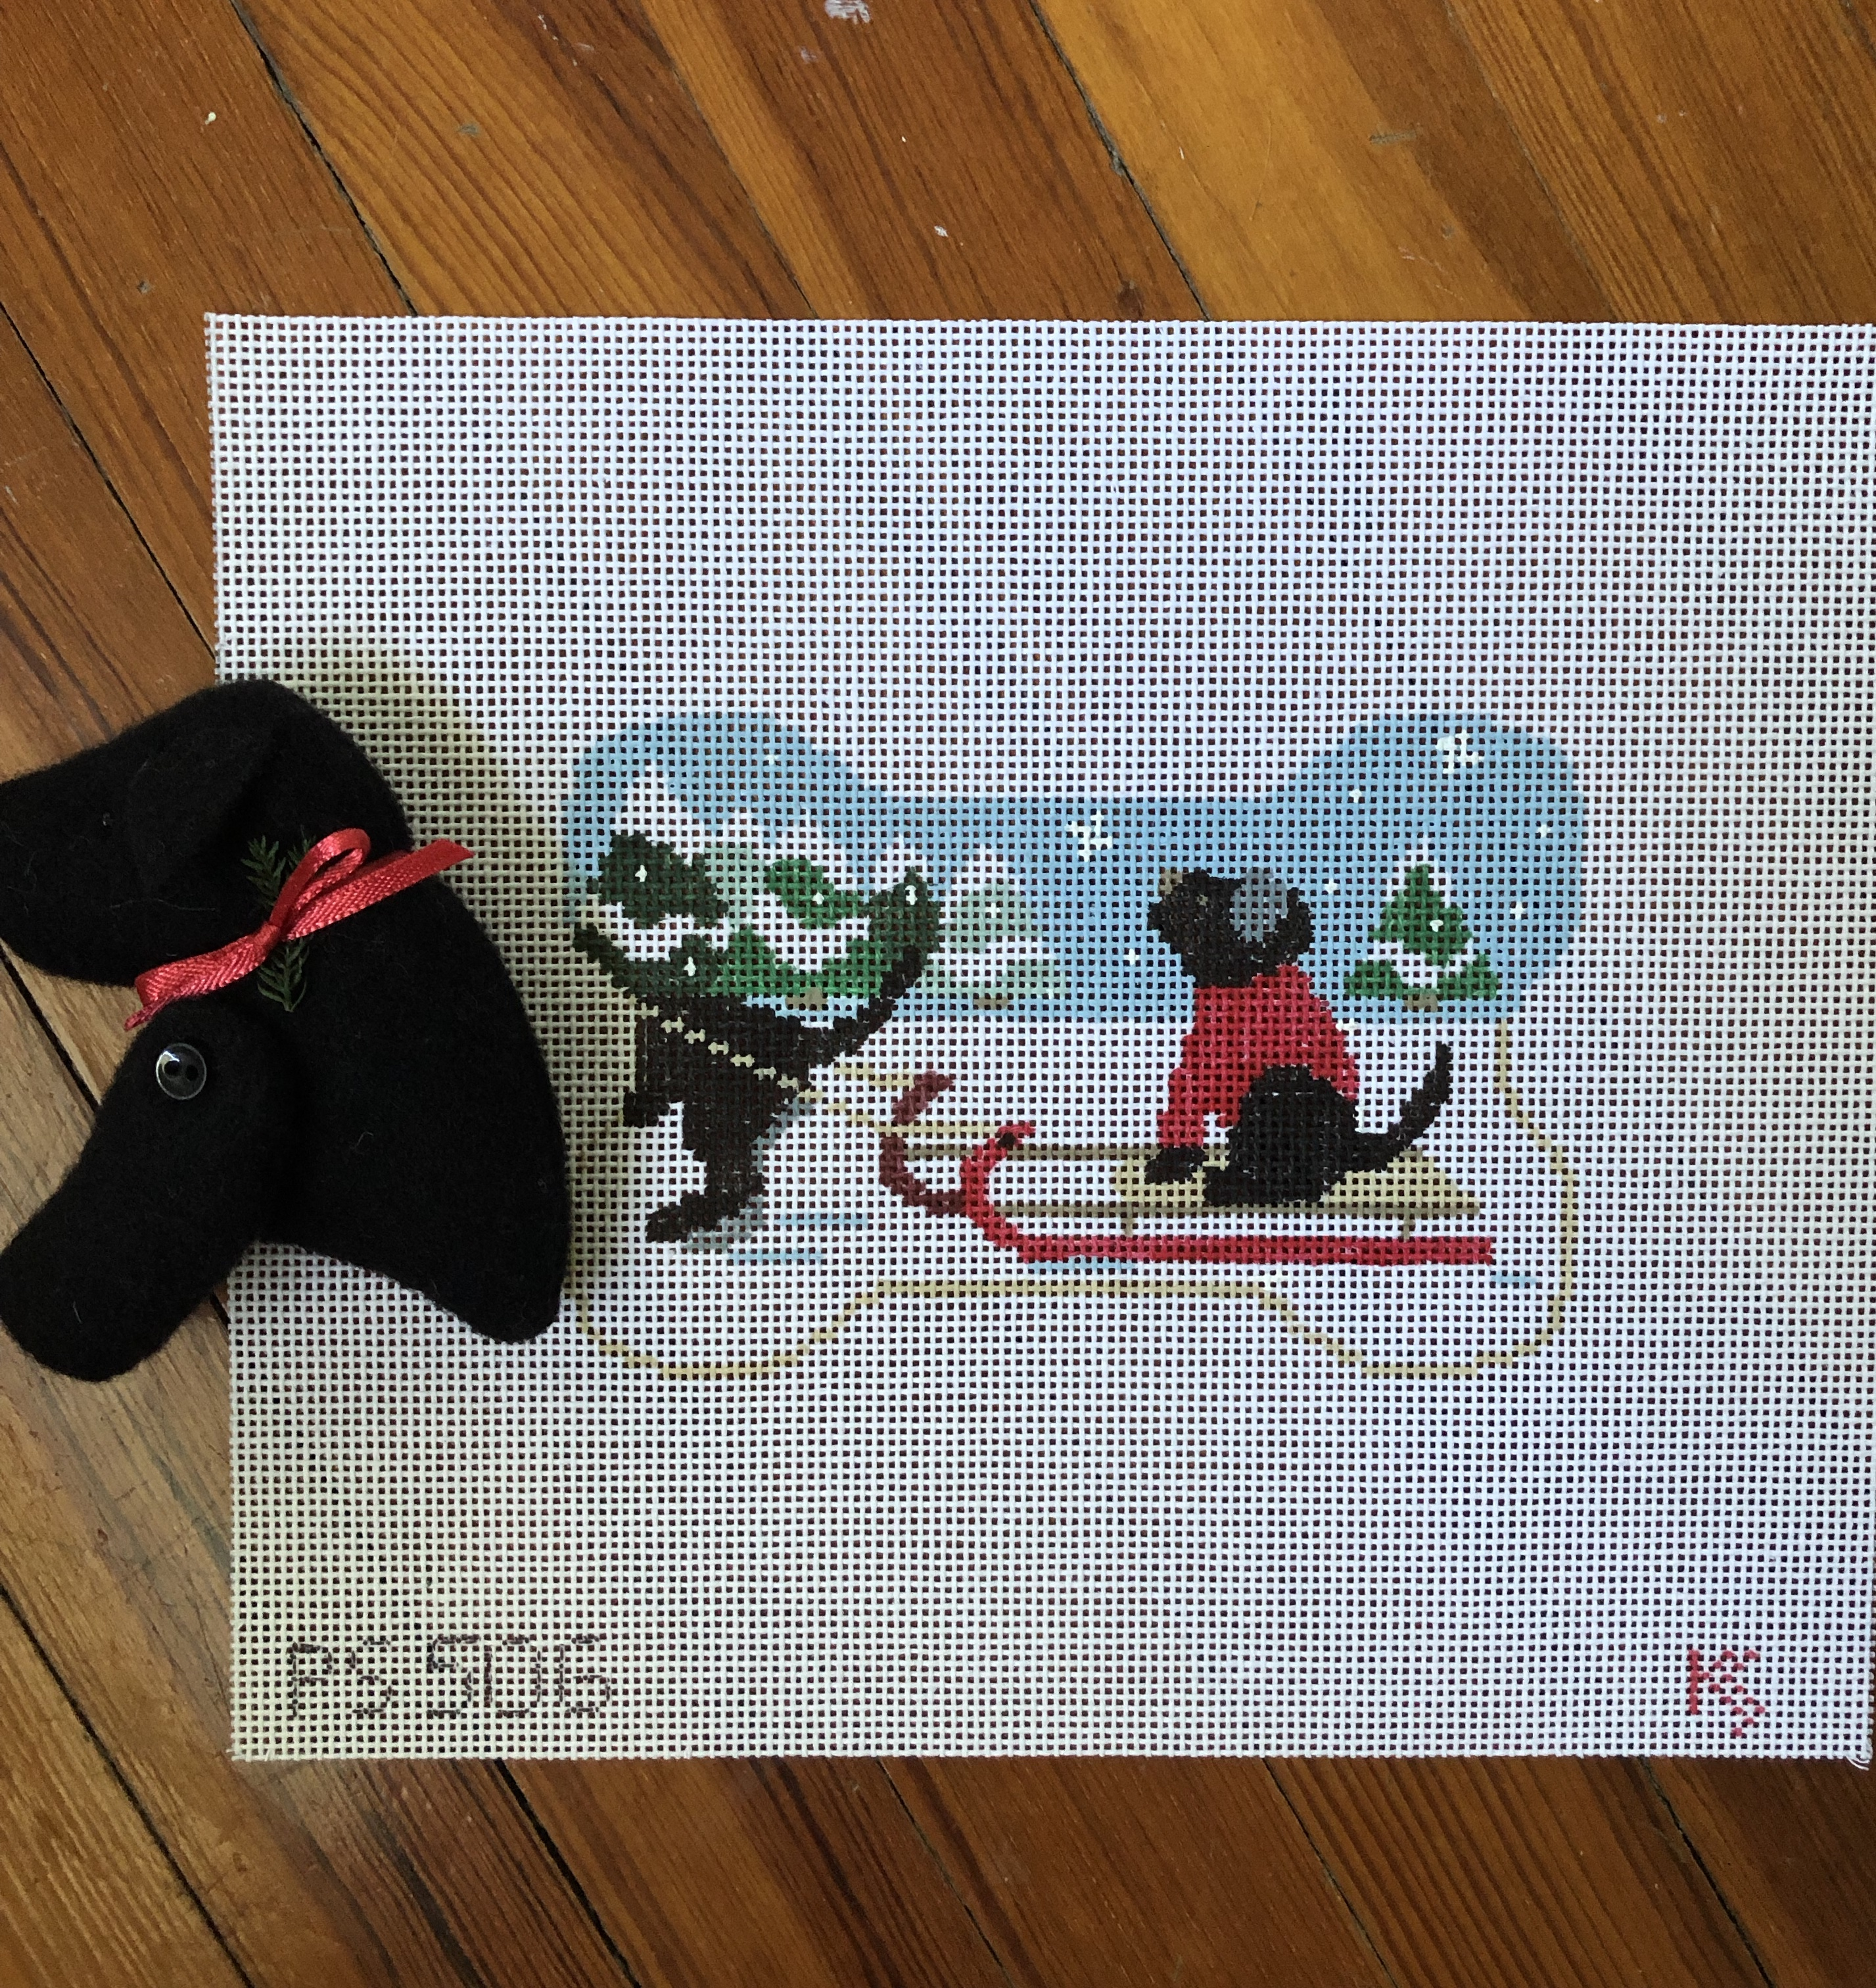 Kathy Schenkel Sledding Santa w/Black Lab